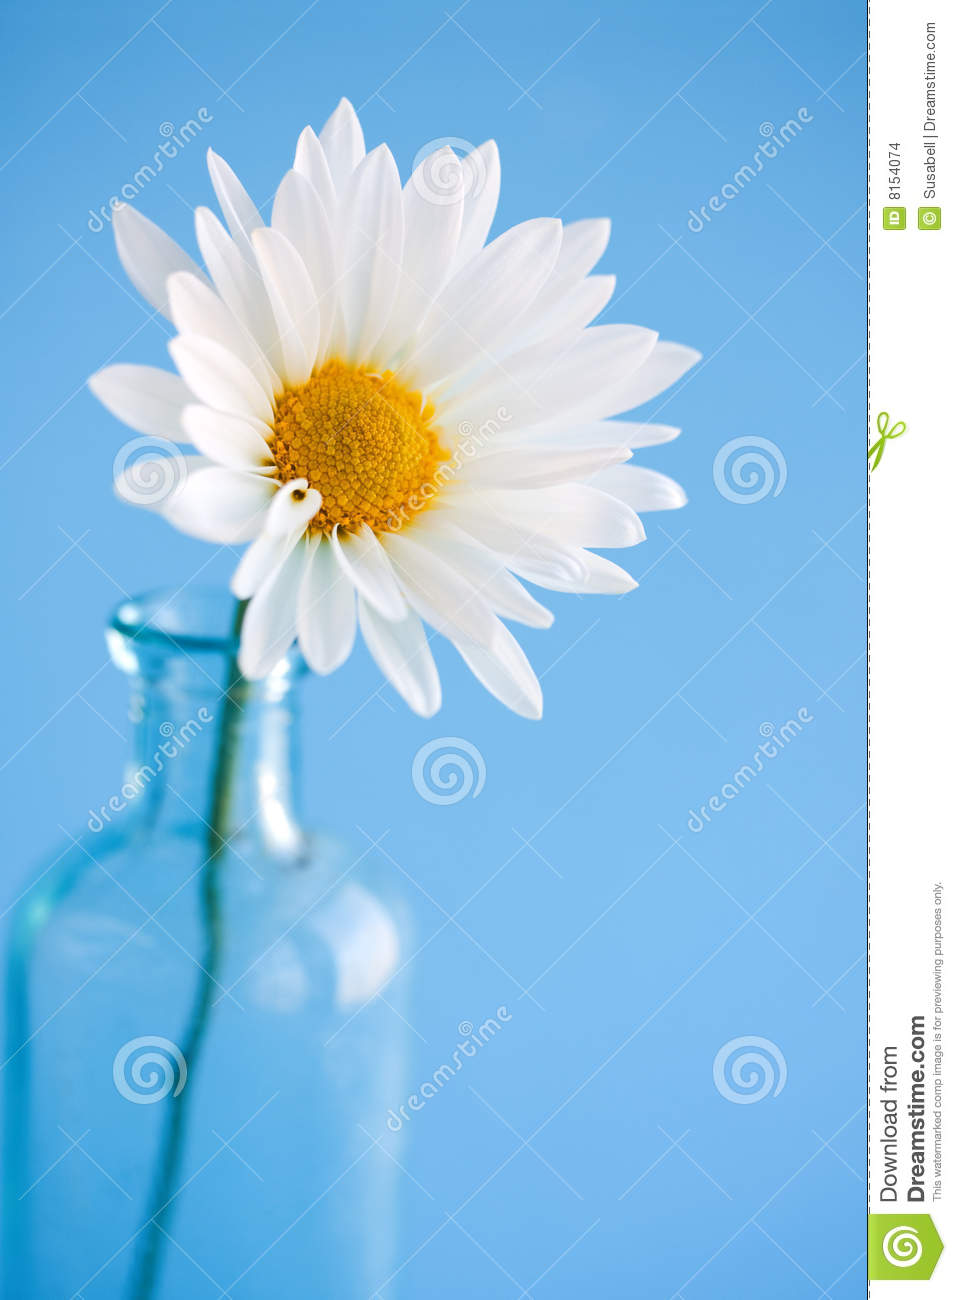 Daisy Flower in vase stock photo. Image of glass, delicate ...